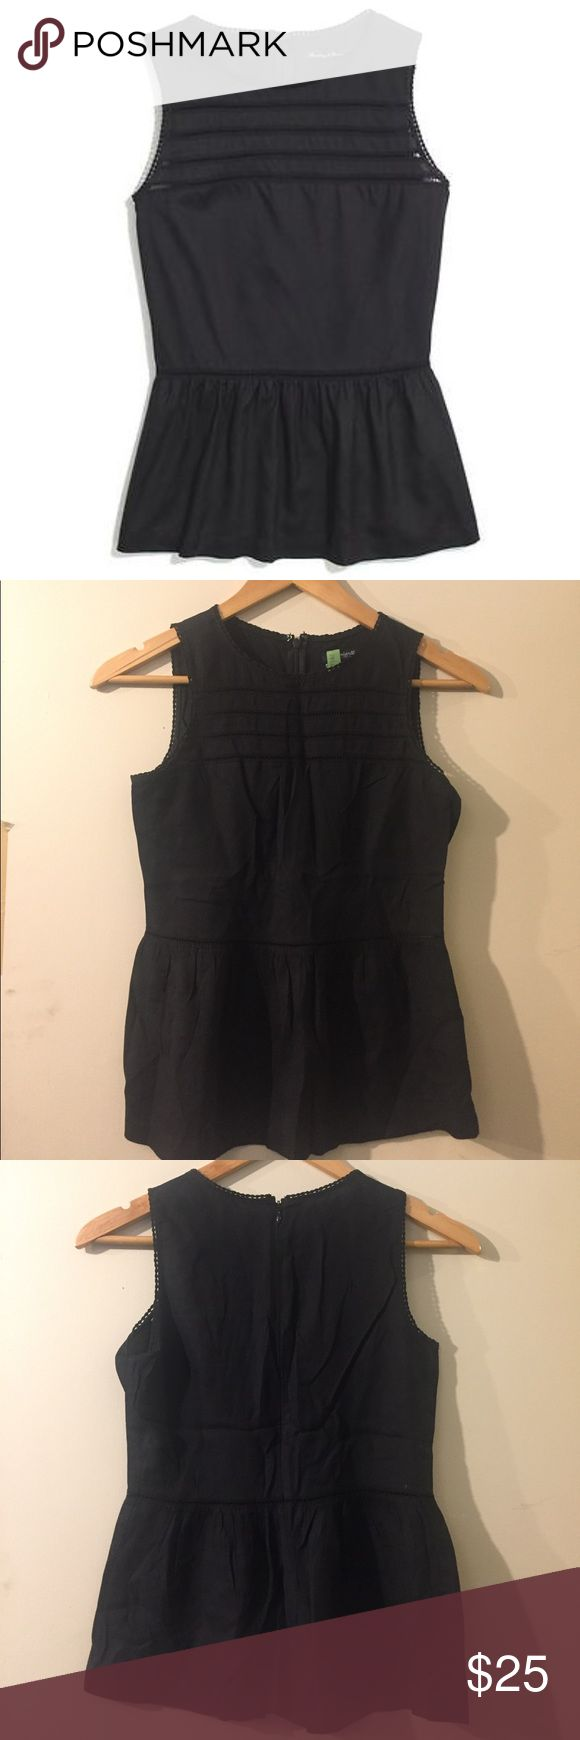 Flirty Black peplum Madewell top Super cute and flirty top! Goes great with a pair or skinny jeans.  (Recently dry cleaned, but then folded.. you can just steam and wear!) Madewell Tops Tank Tops